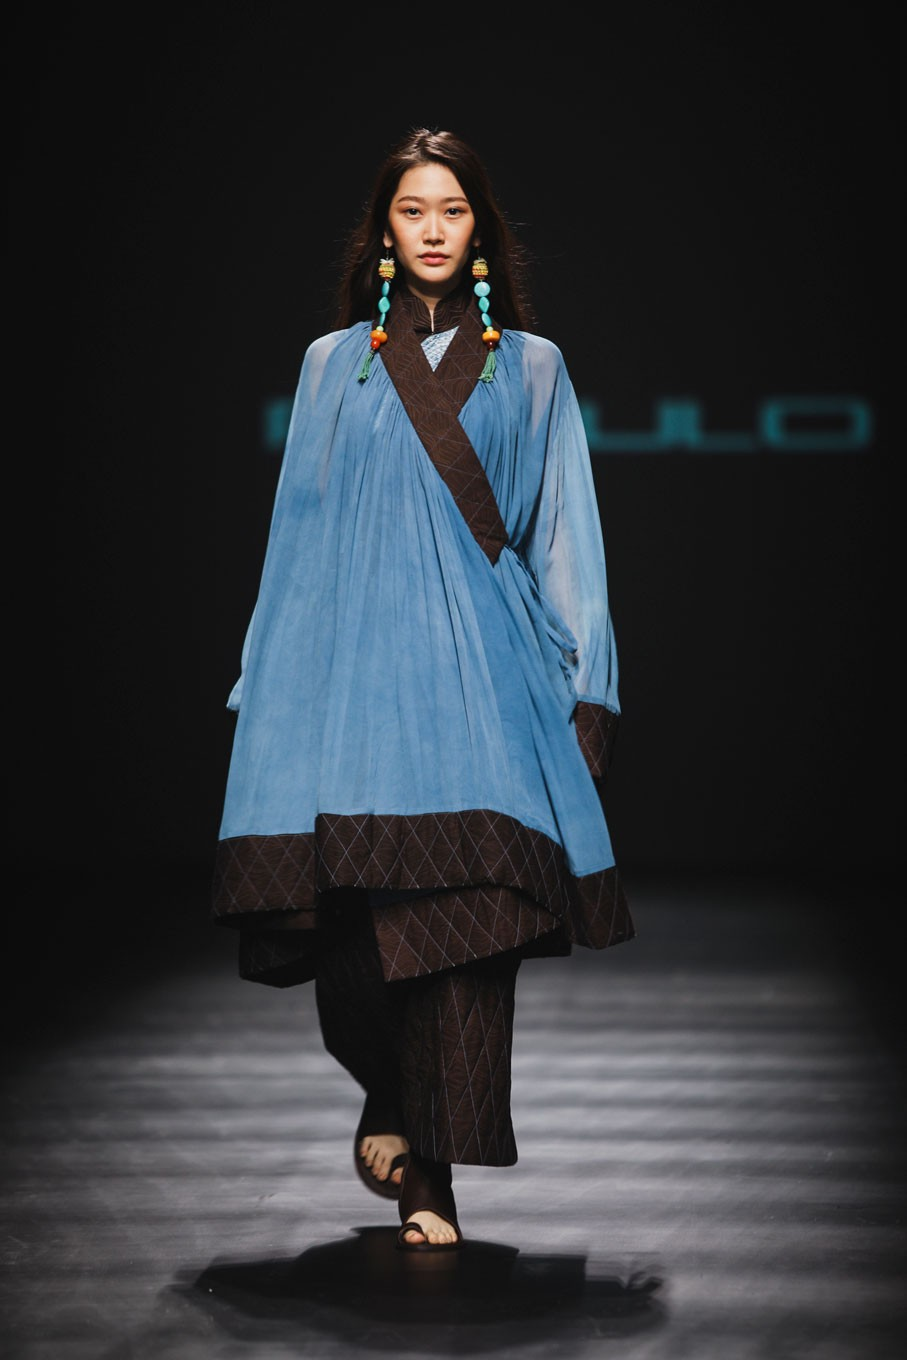 The garments play with contrasting themes, between mountains and water, man and woman, nature and mankind.